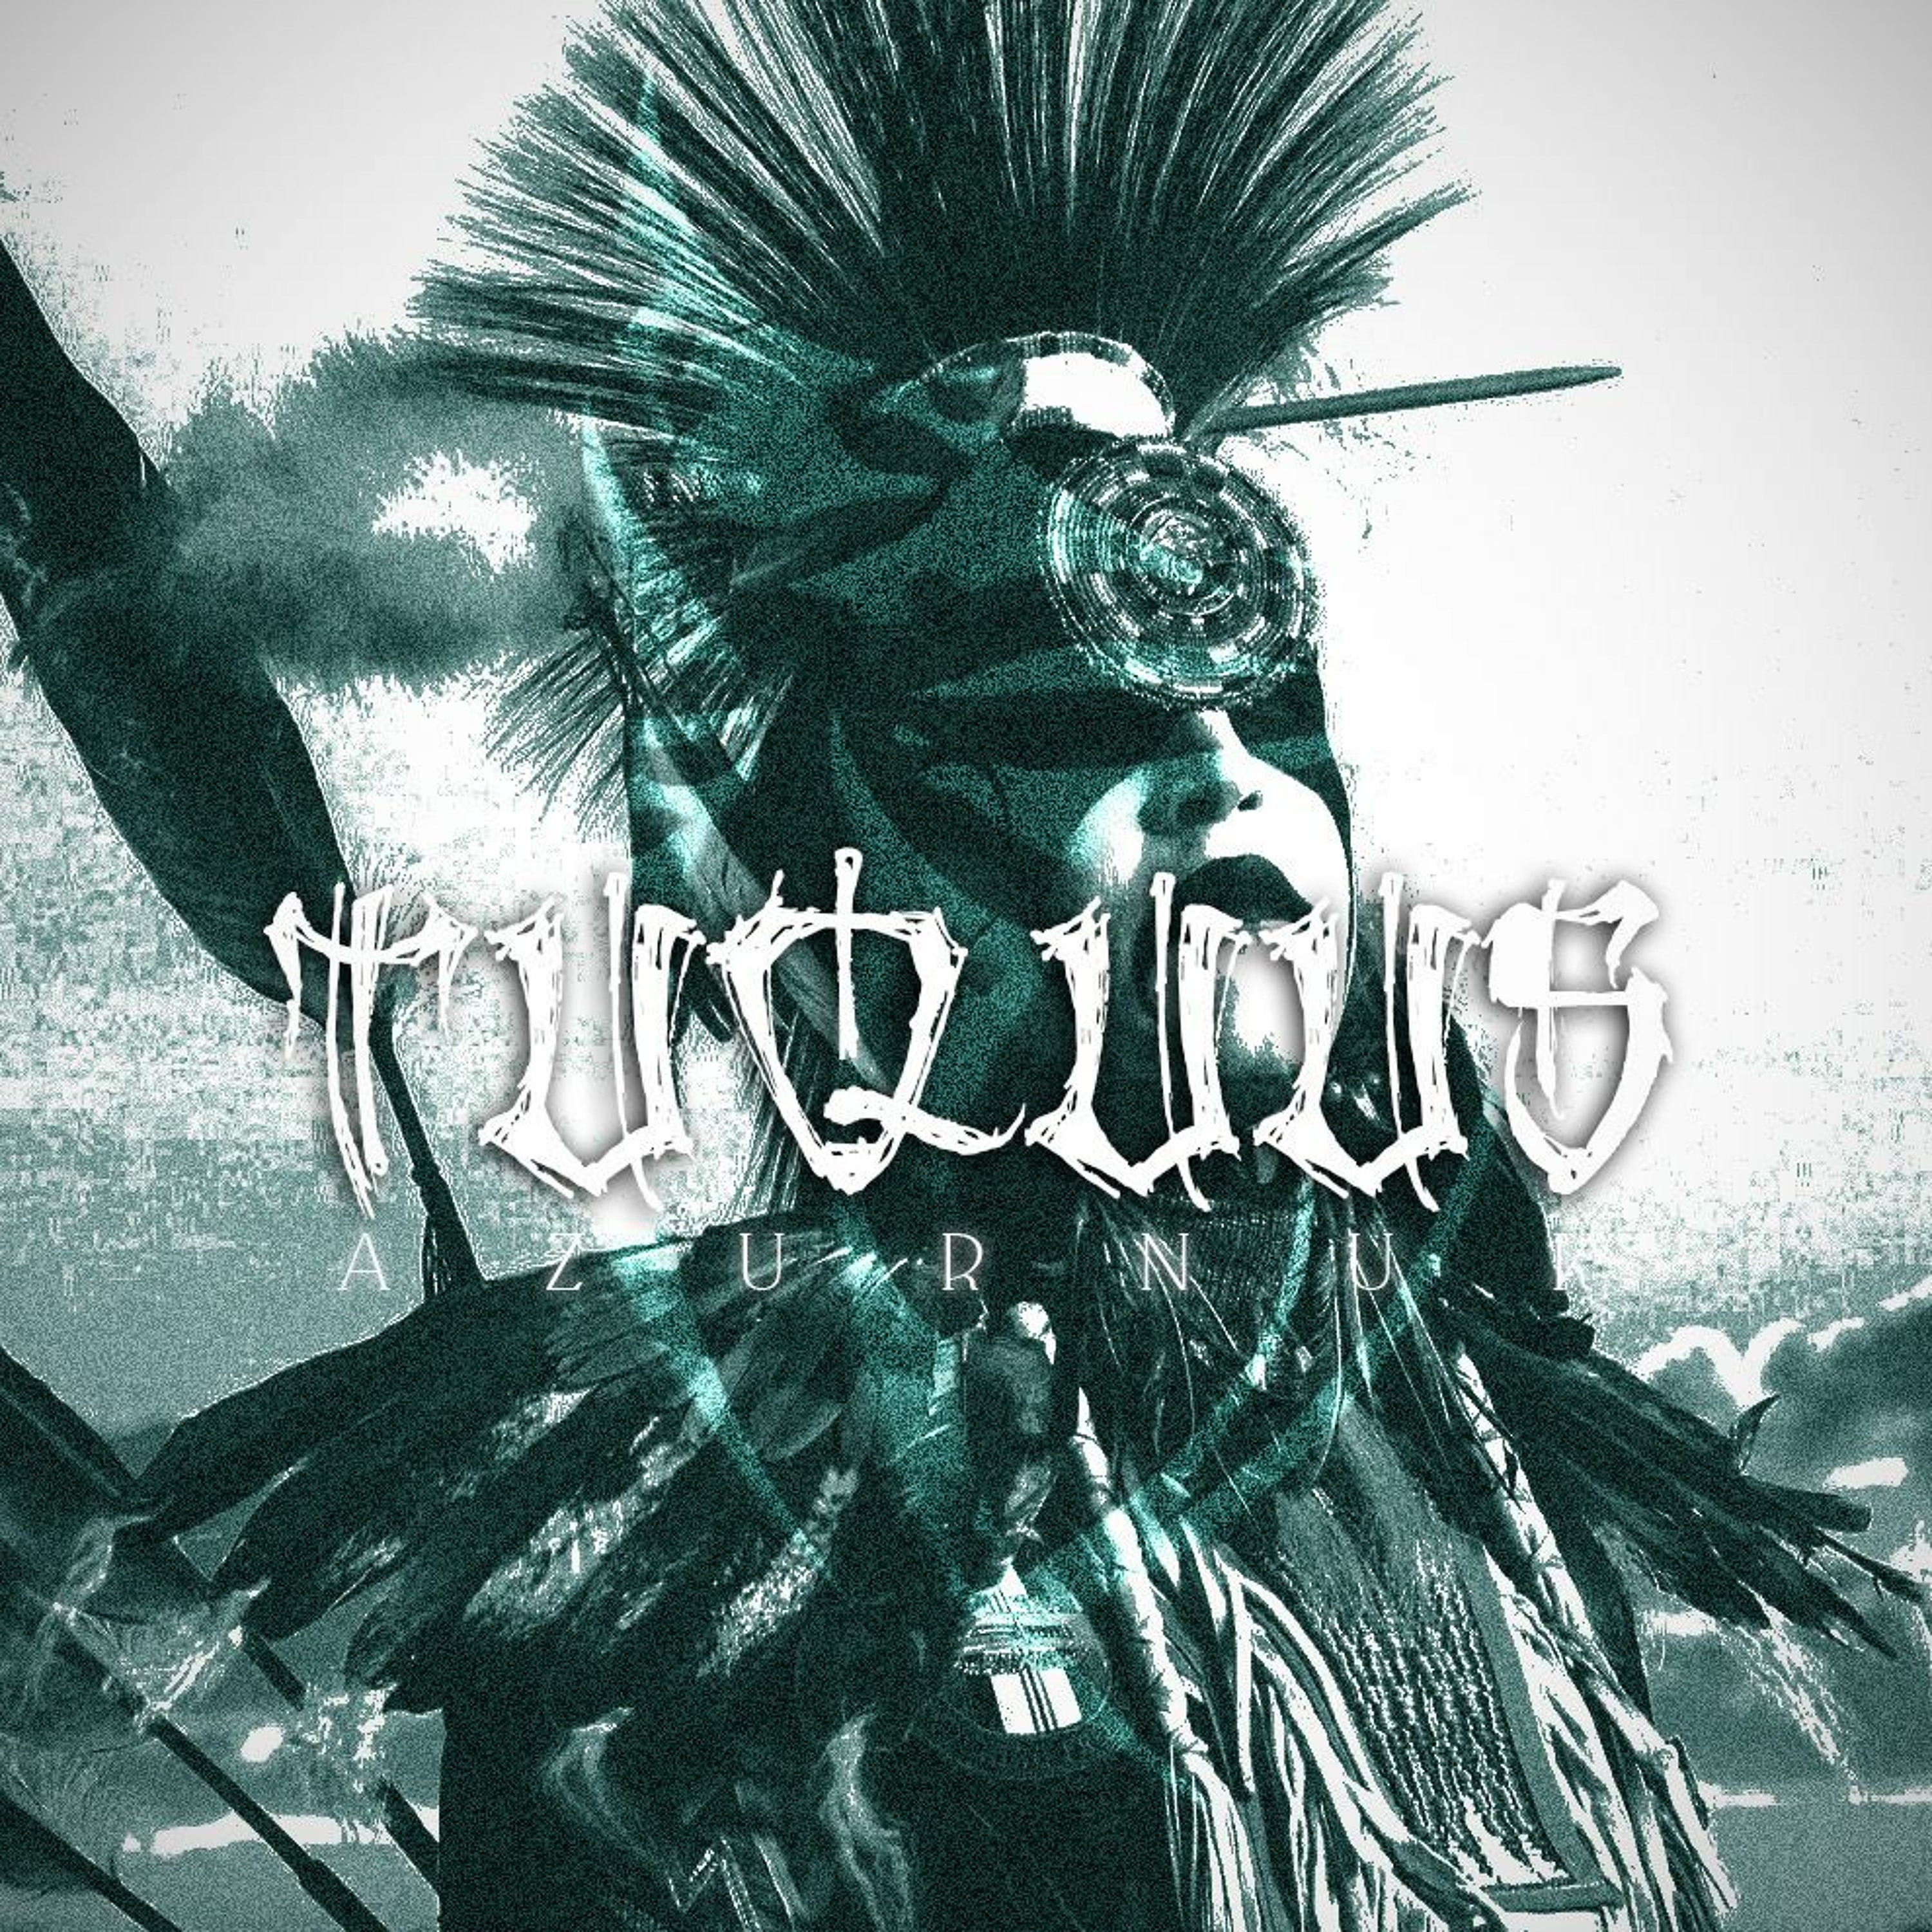 Tuquus (Original Mix)